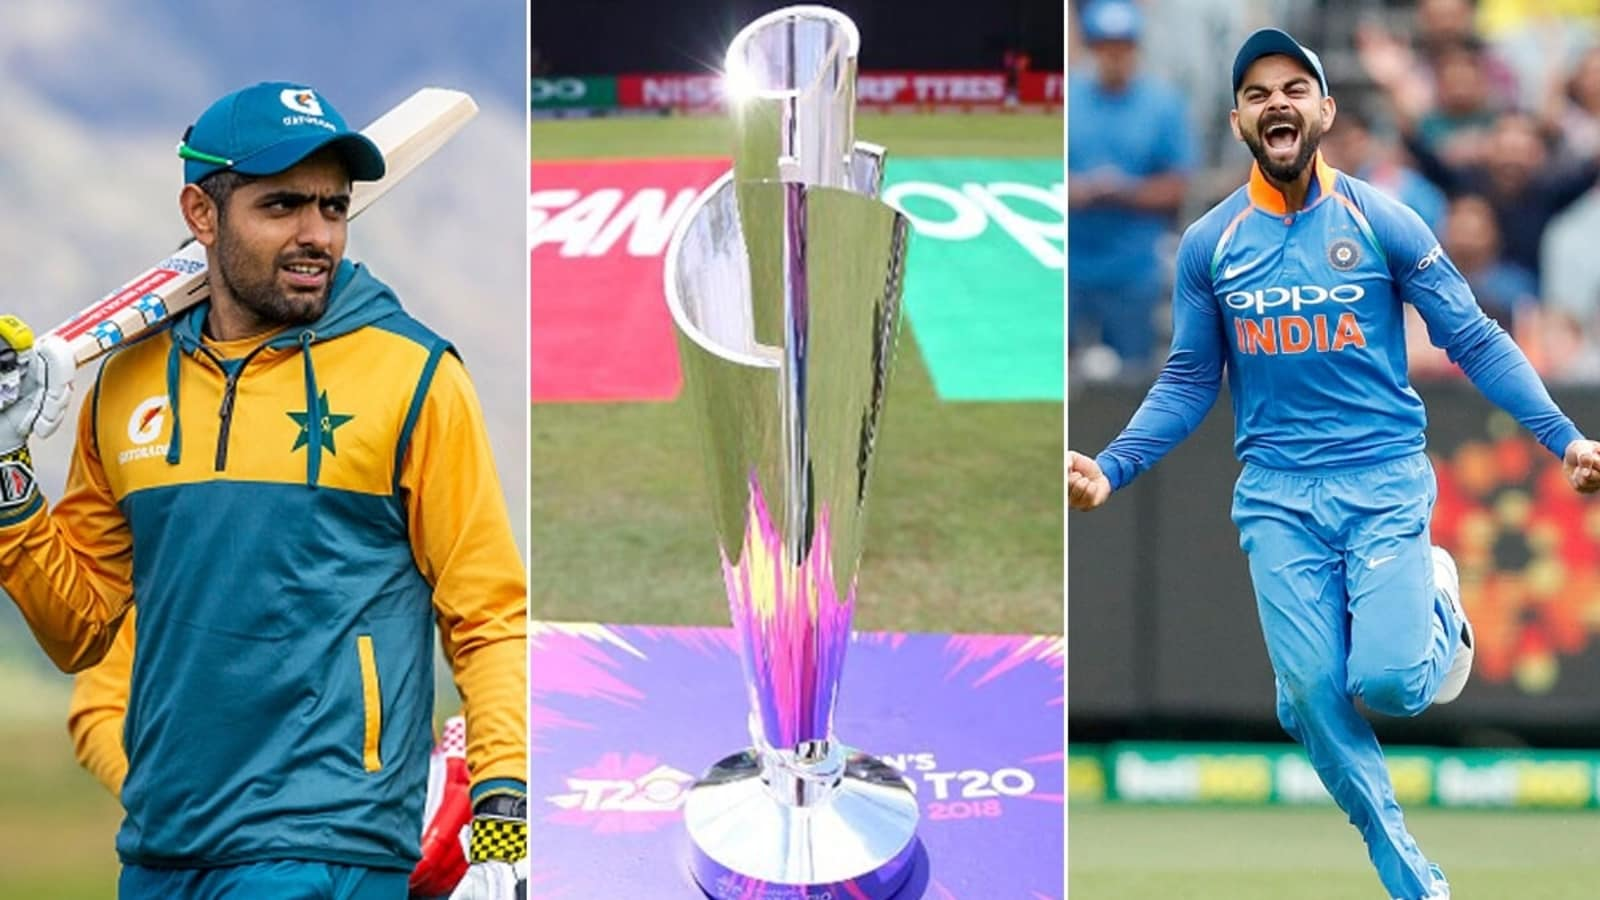 T20 World Cup 2021: India and Pakistan to clash in Super 12 stage, grouped  with New Zealand and Afghanistan   Cricket - Hindustan Times